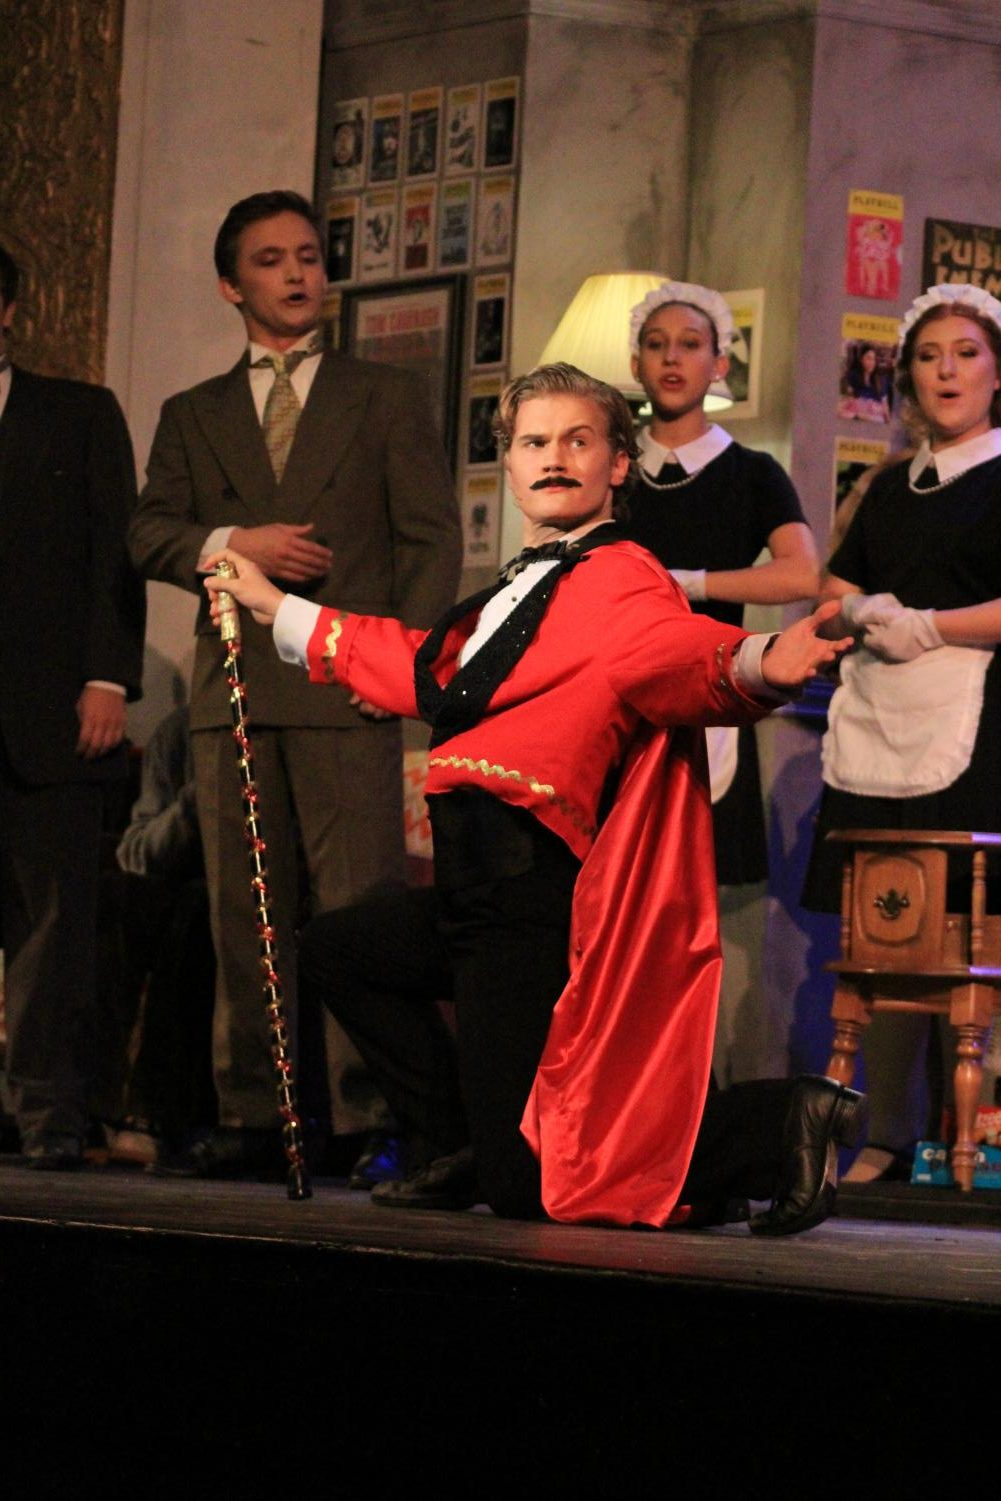 Striking+a+pose%2C+senior+Nathan+Patterson+introduces+his+character%2C+%E2%80%9CAldopho%E2%80%9D+in+the+Plant+Theater+Company+production+of+the+Drowsy+Chaperone.+This+was+Patterson%E2%80%99s+first+and+only+show+of+his+high+school+career.+